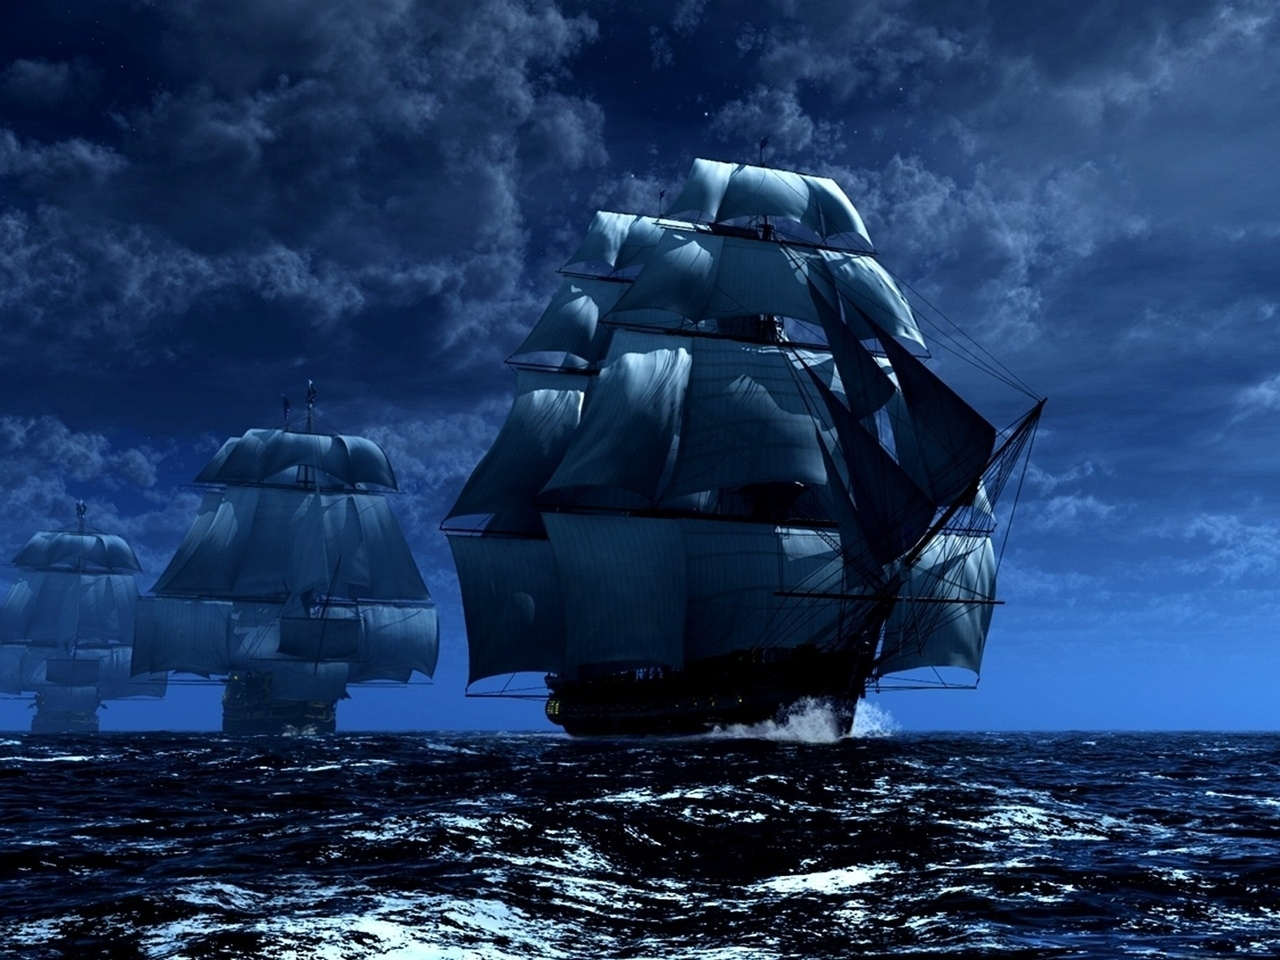 29611 download wallpaper Transport, Ships, Sea, Pictures screensavers and pictures for free